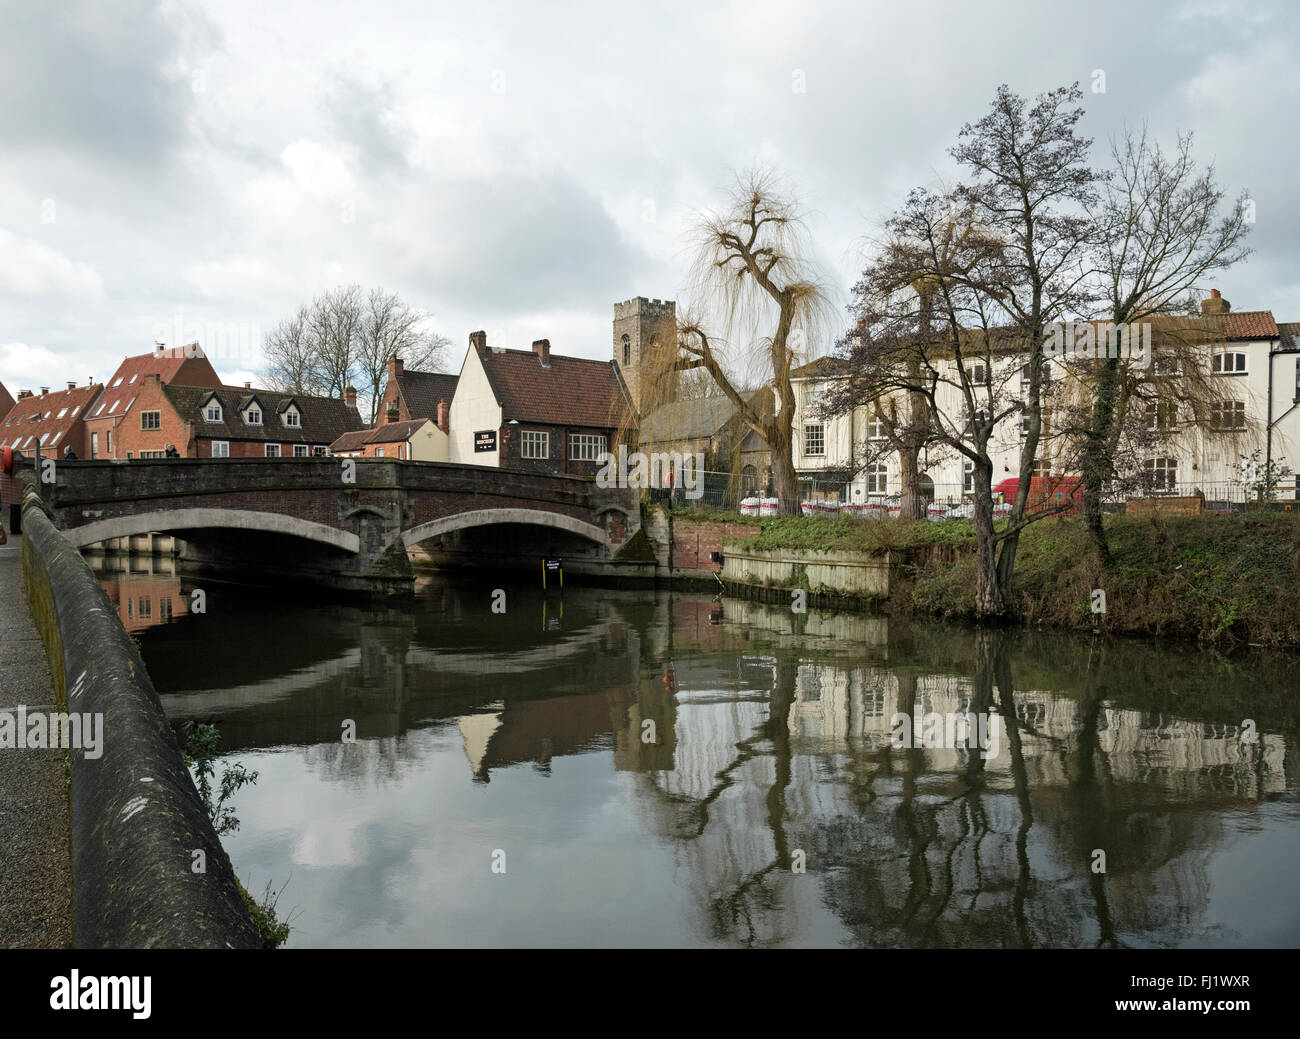 Images around Norwich's River Wensum near the Quay Side showing local buildings and landmarks Stock Photo